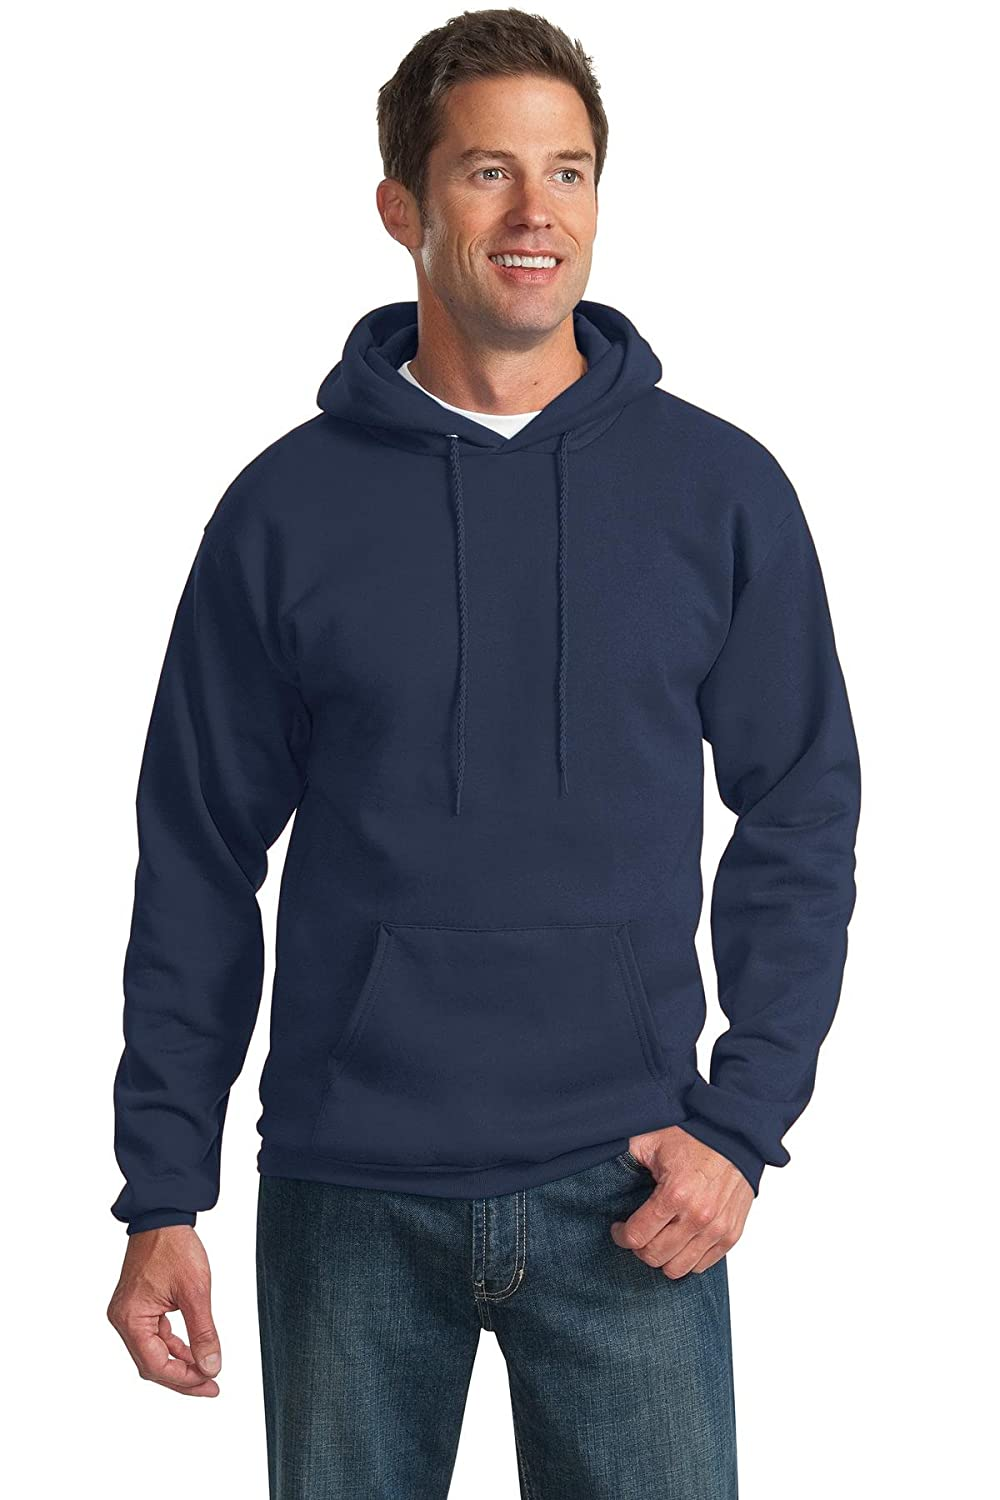 80%OFF Port & Company Men's Ultimate Hooded Sweatshirt